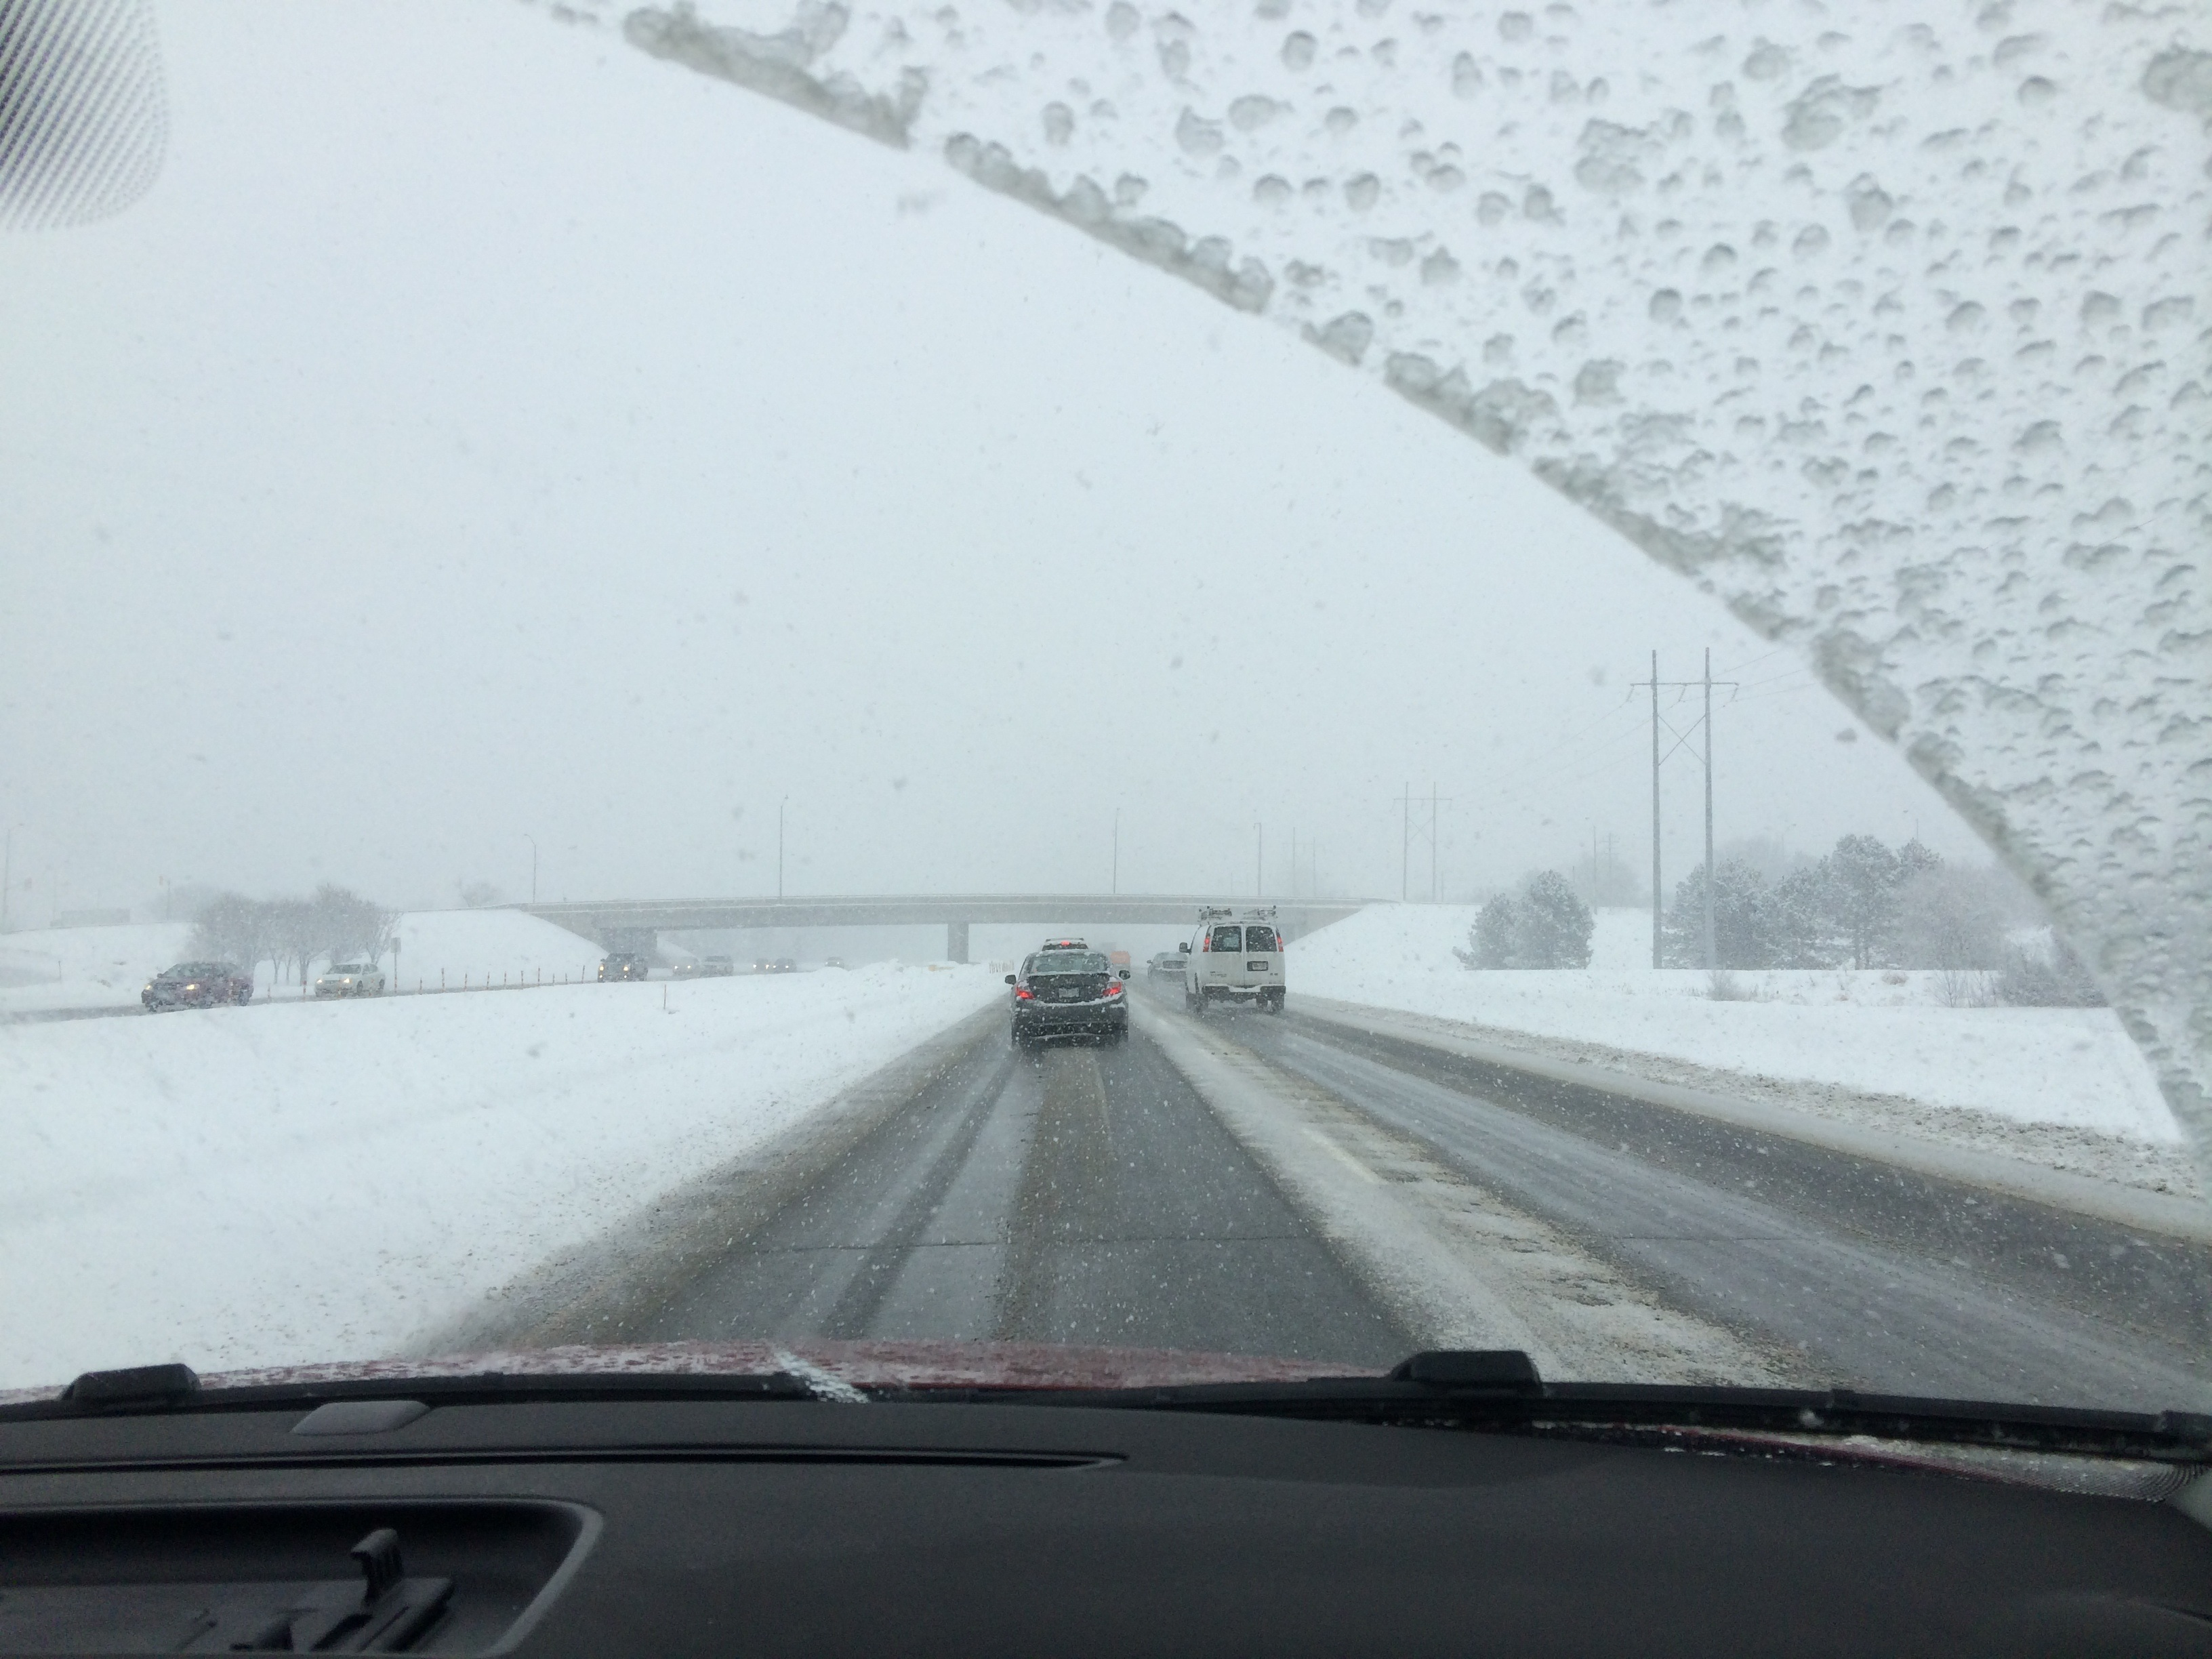 driving on icy roads